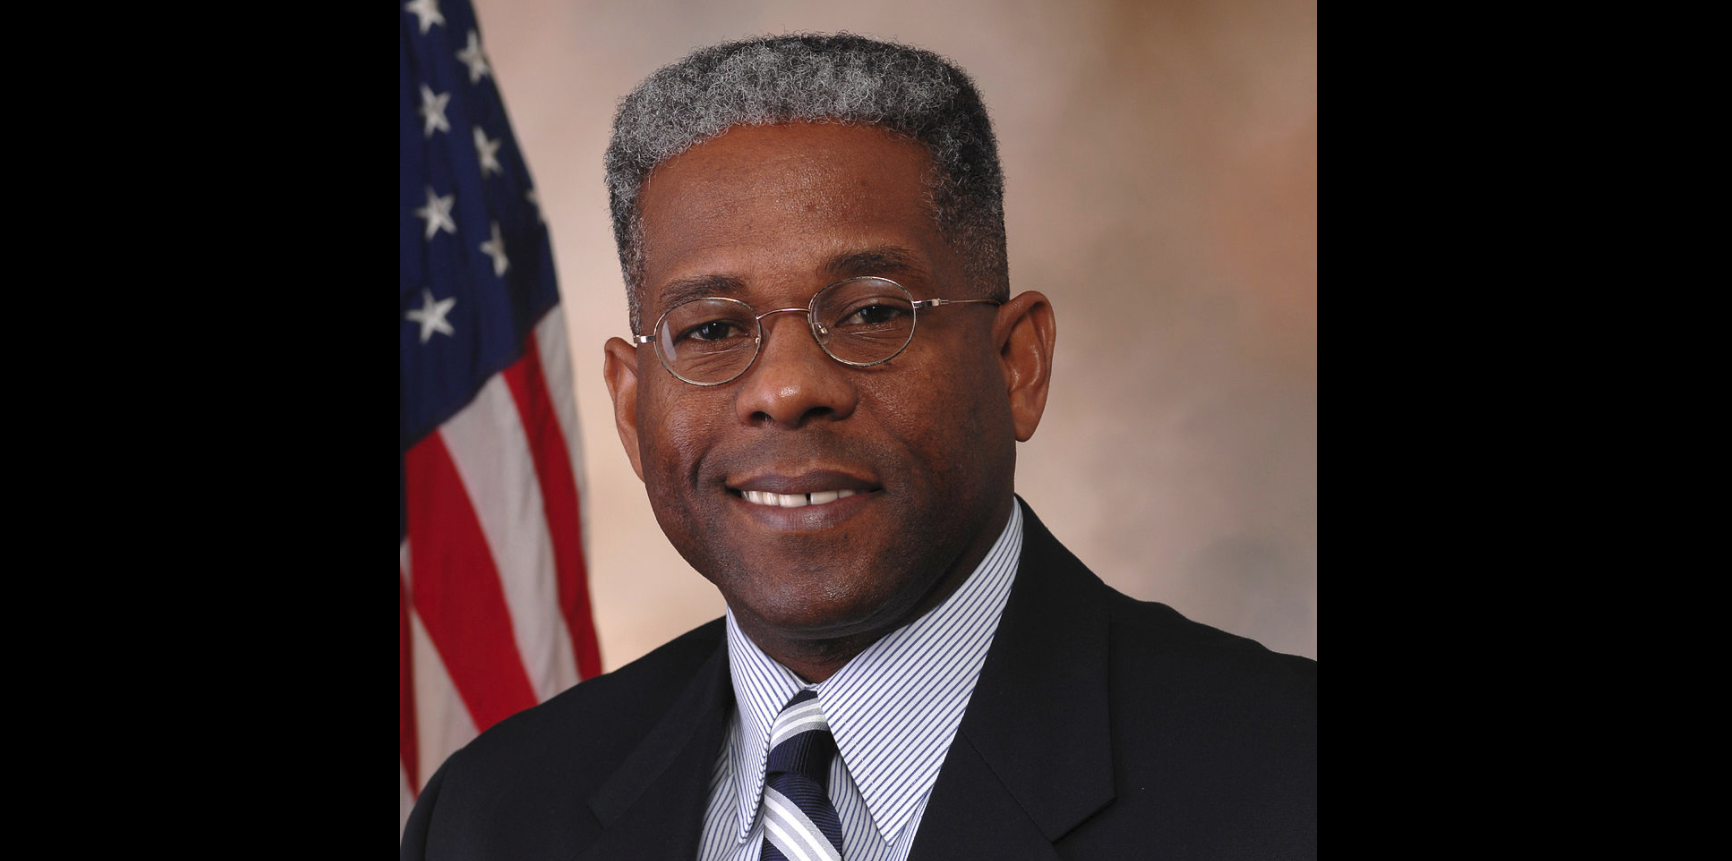 Chris Salcedo Show : Colonel Allen West Reacts to the Dem Debate